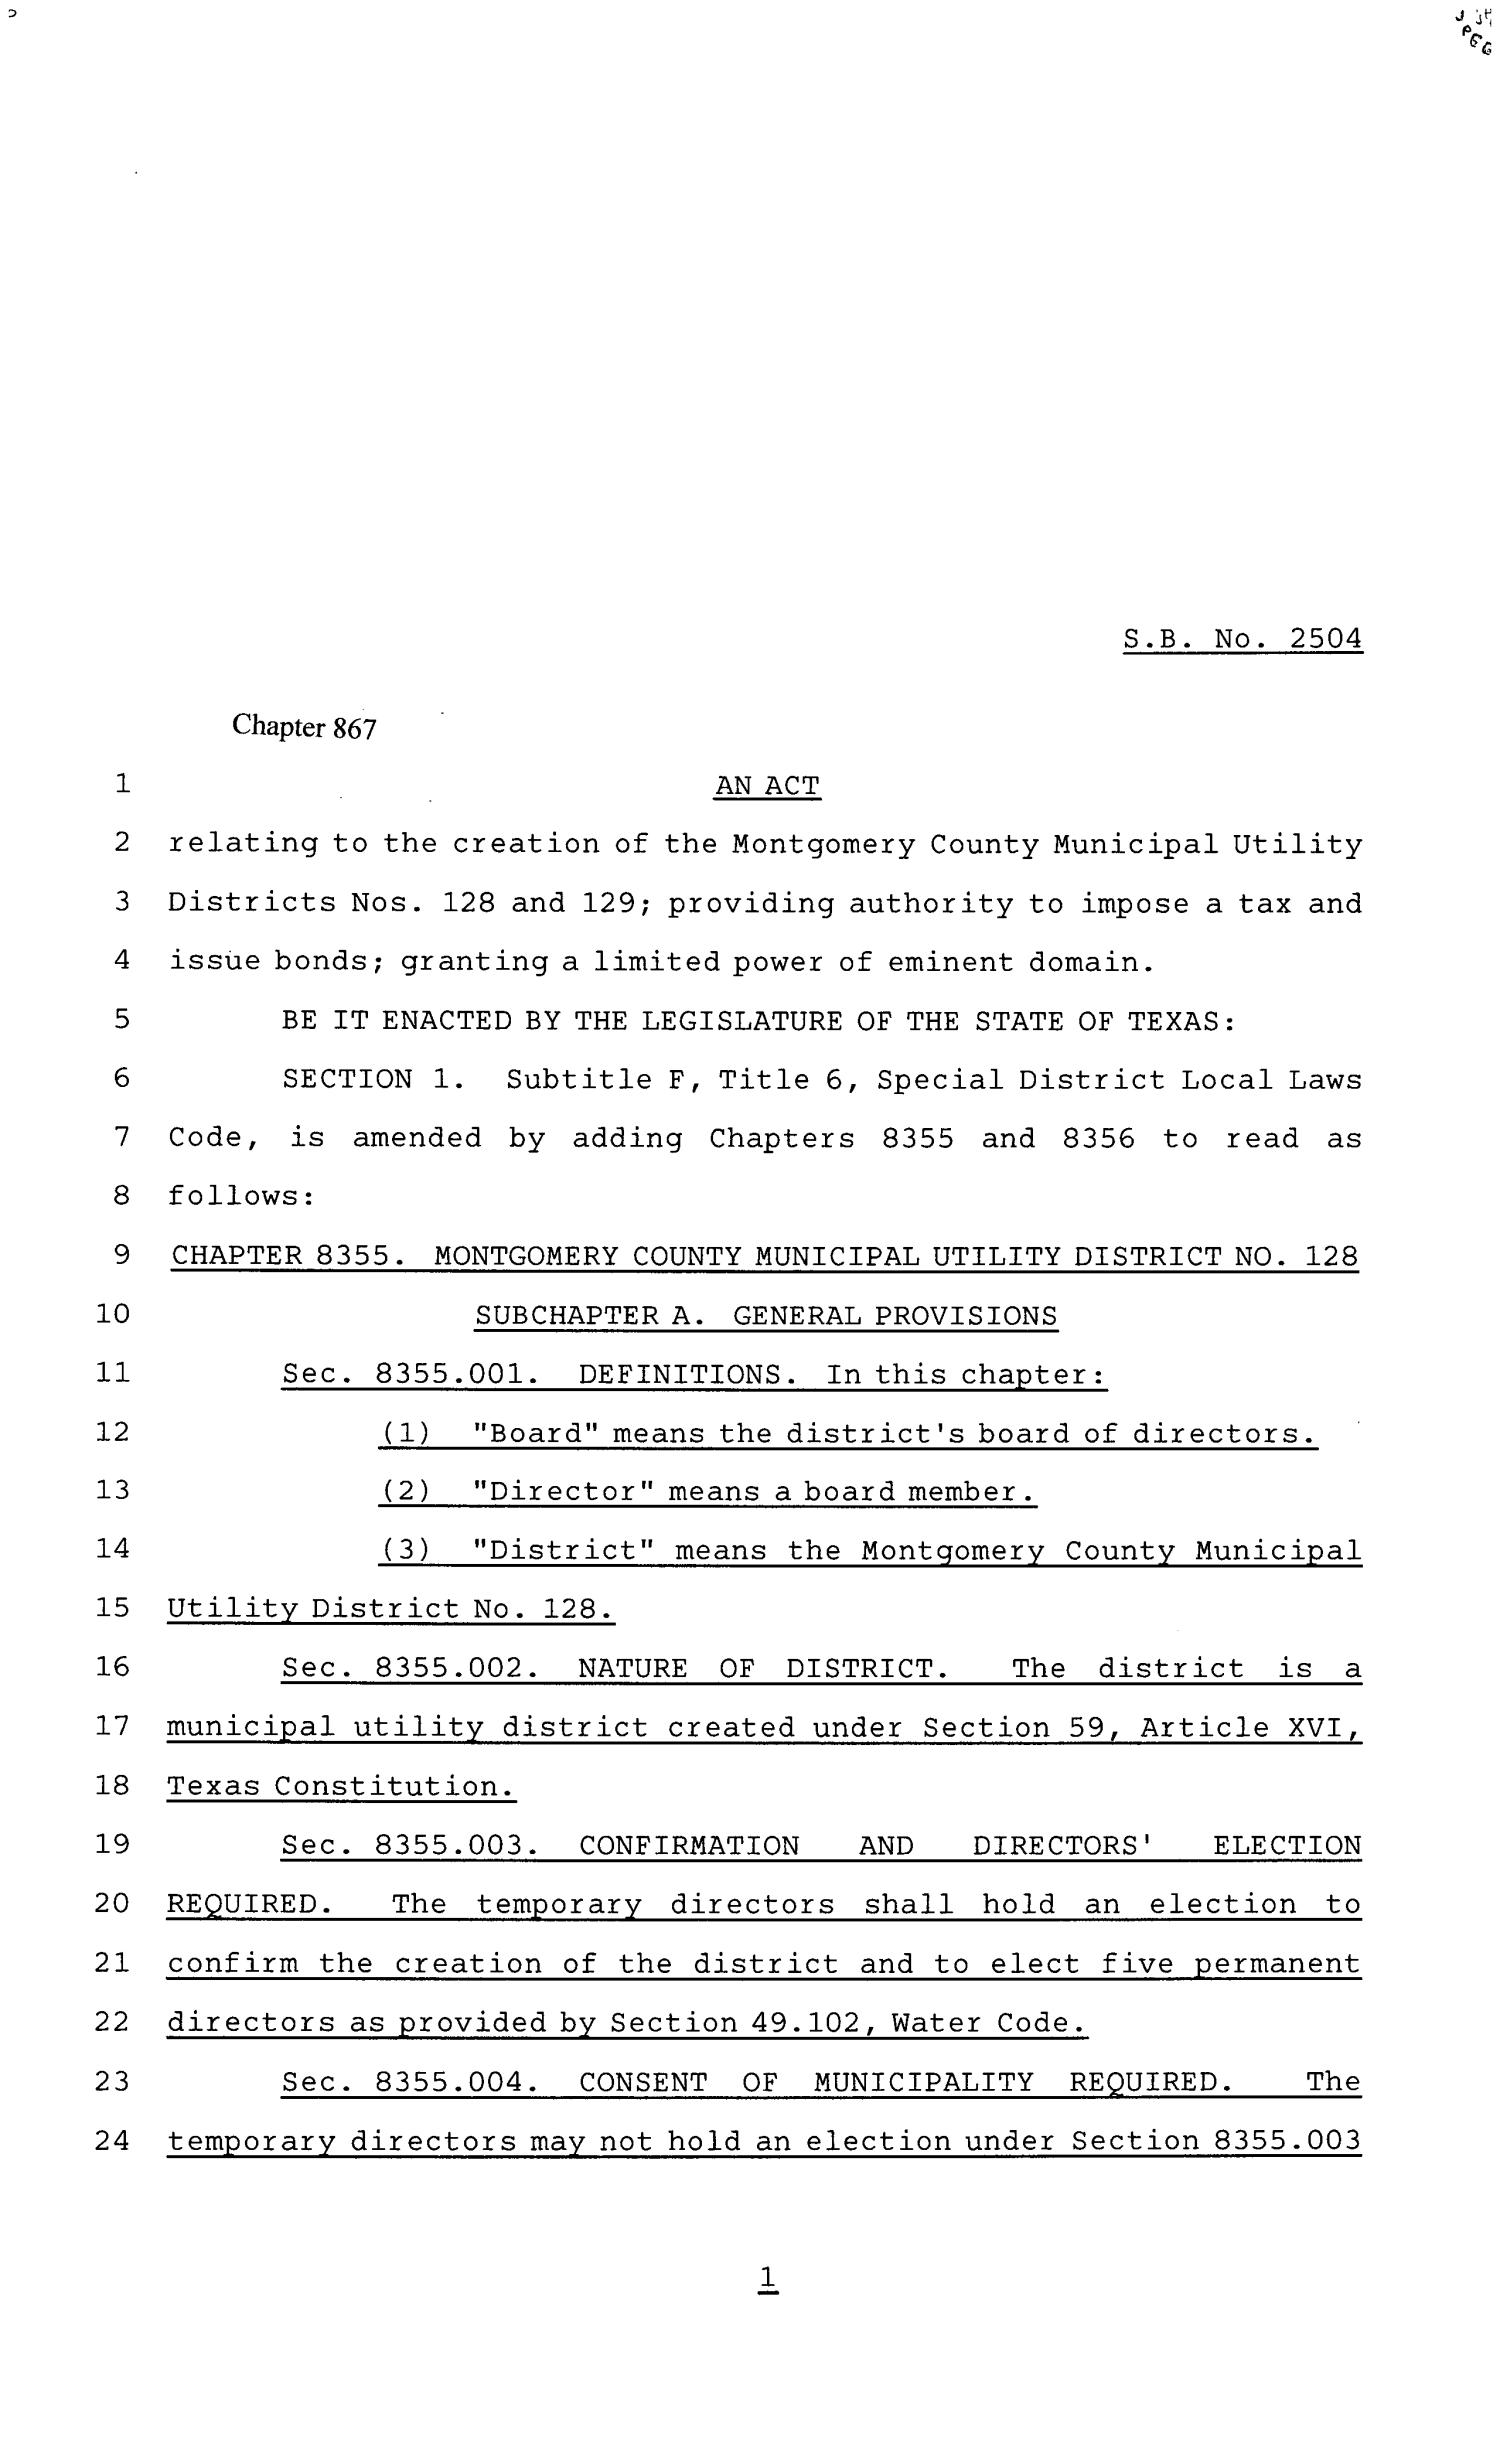 81st Texas Legislature, Senate Bill 2504, Chapter 867                                                                                                      [Sequence #]: 1 of 53